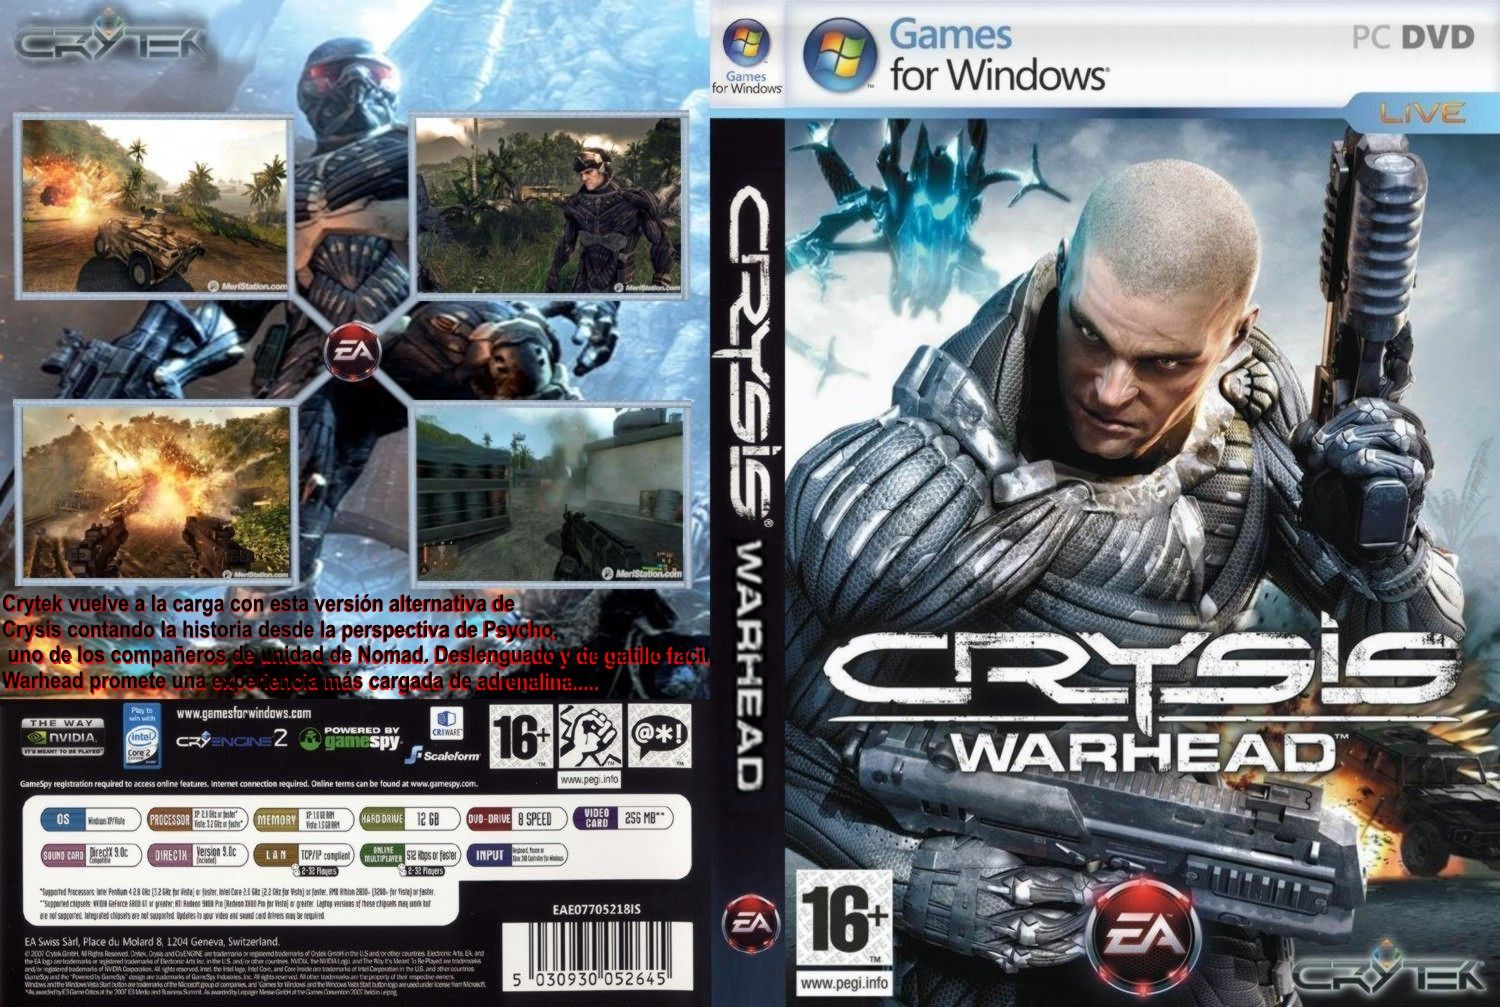 Microsoft have A one Warhead crysis and of 2014 Crysis: Dvd 15th, 1067 pc.